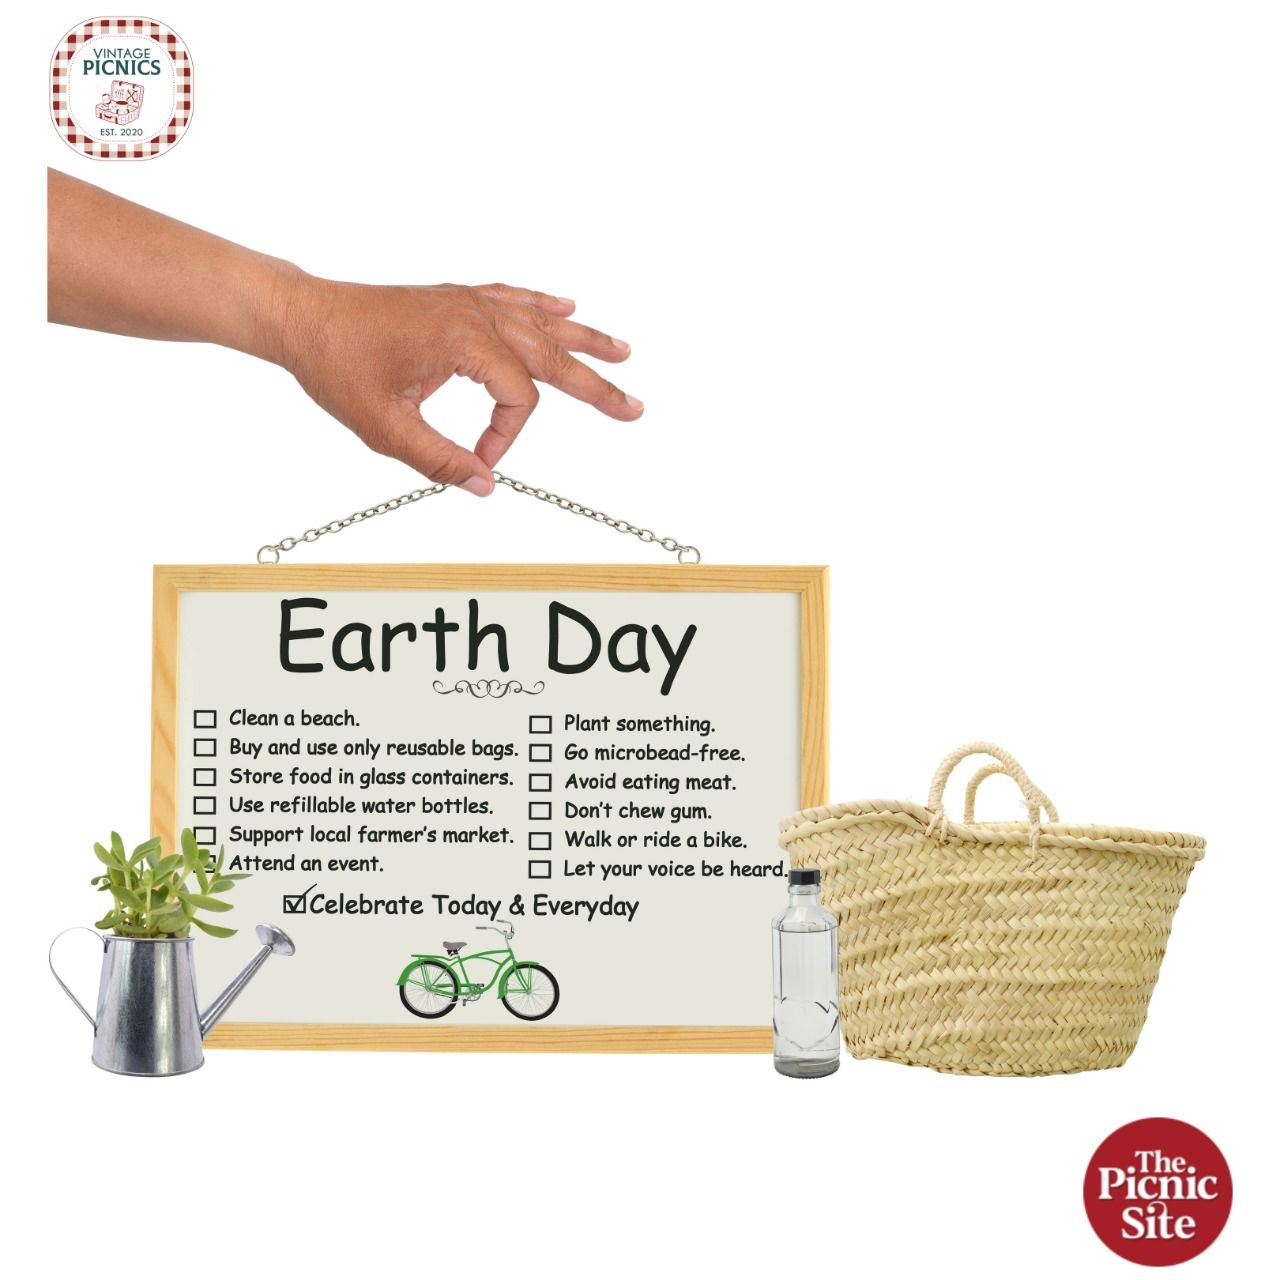 Interesting Facts About Earth Day